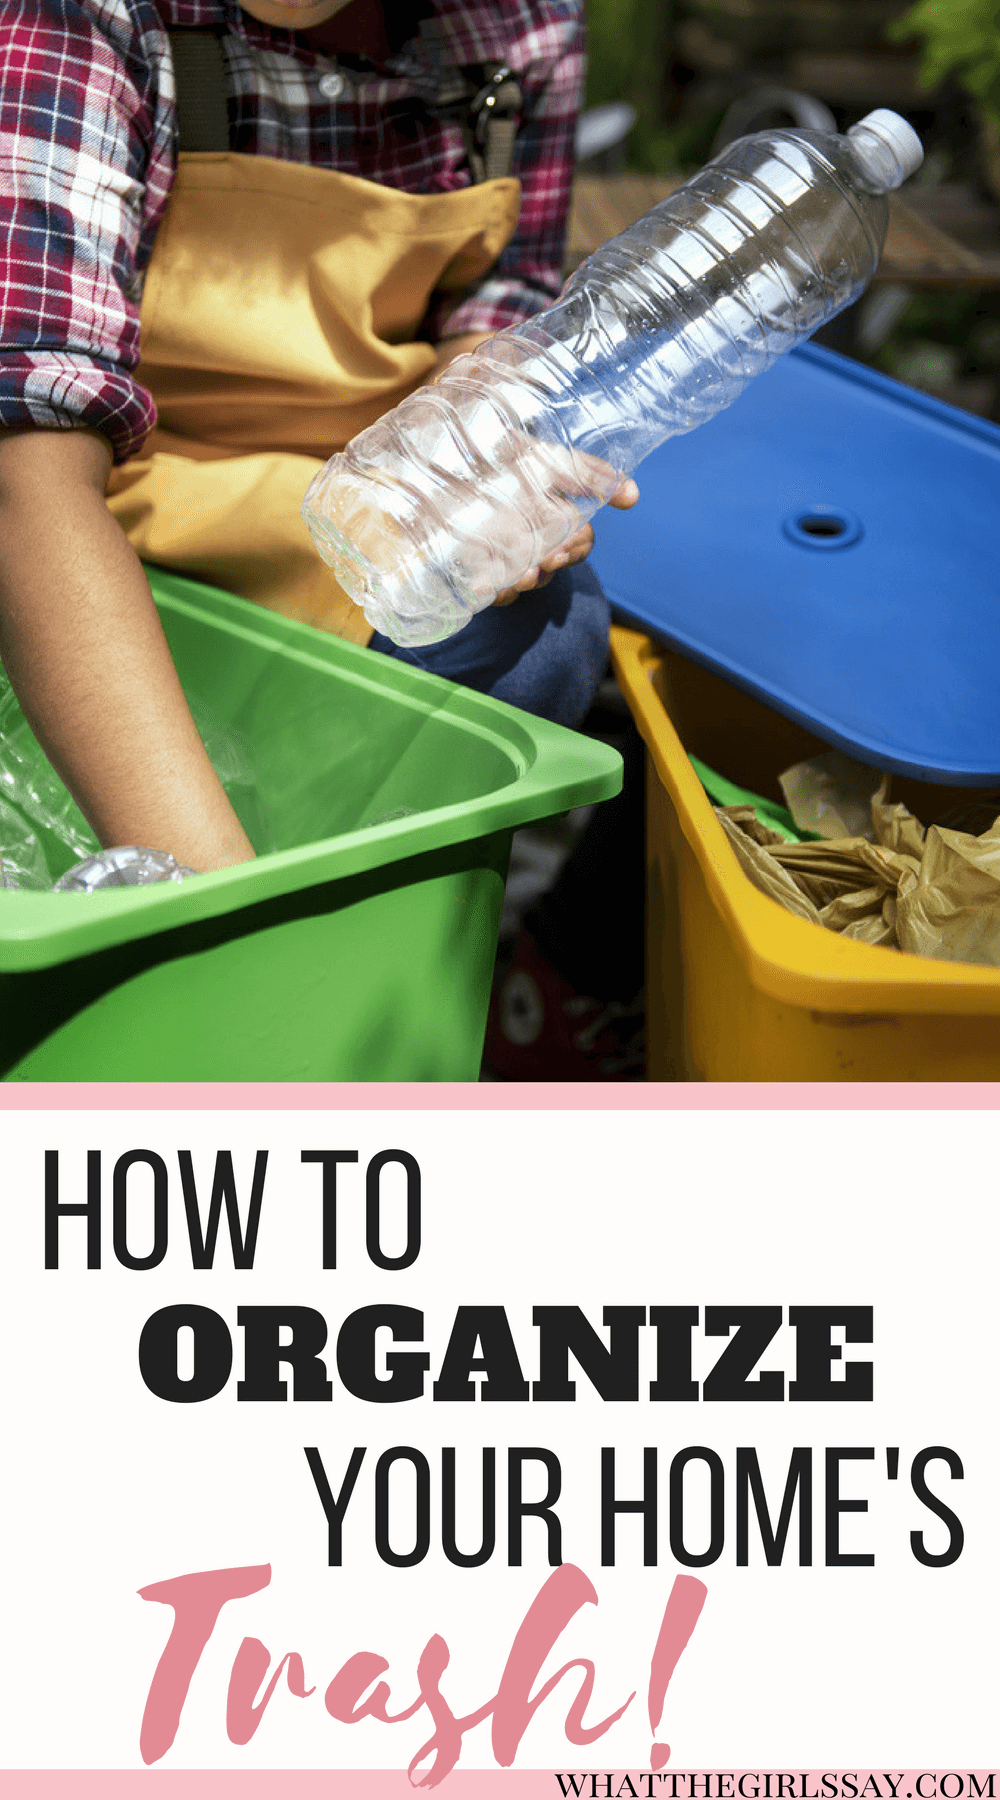 Managing your home trash solutions - organizing your home and recycling